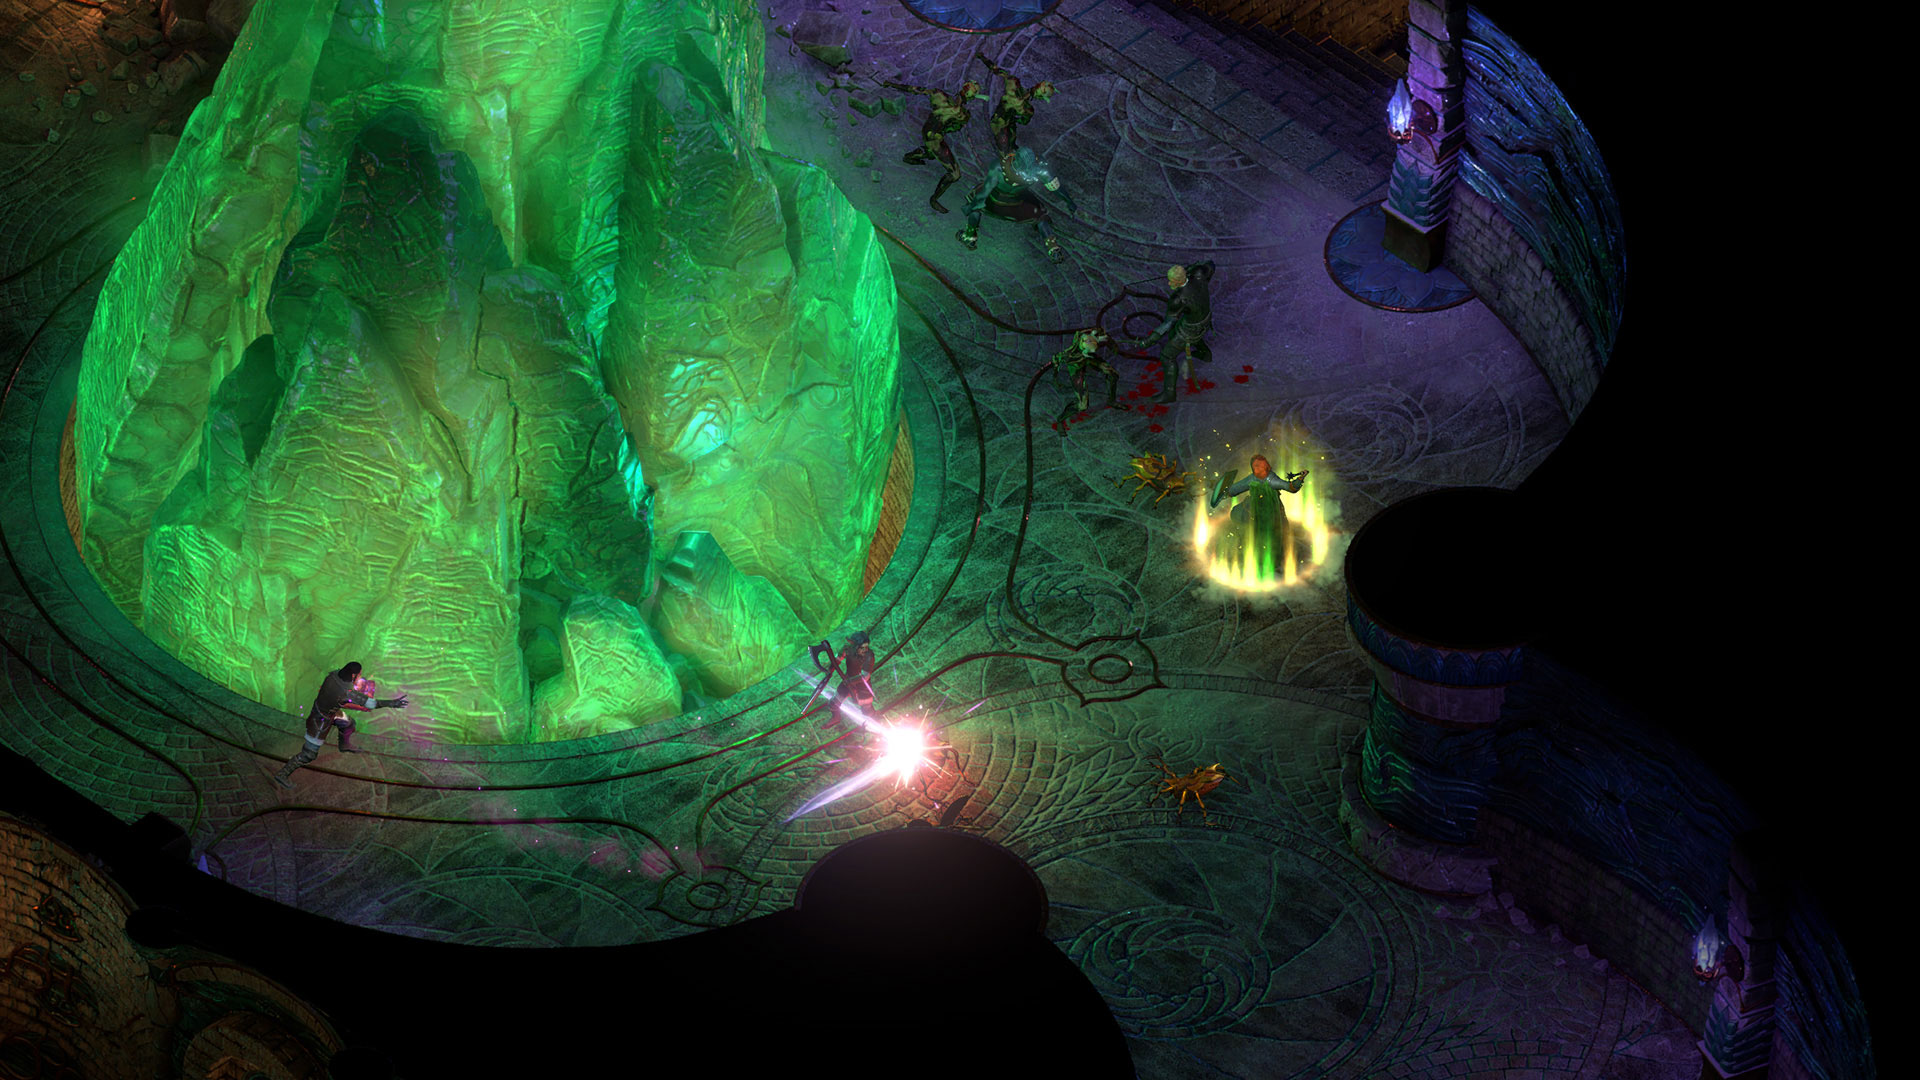 Obsidian entertainment received 45 million in funding for in the modern day crowdfunding projects to get them off the ground has become quite commonplace the first game in the series pillars of eternity falaconquin